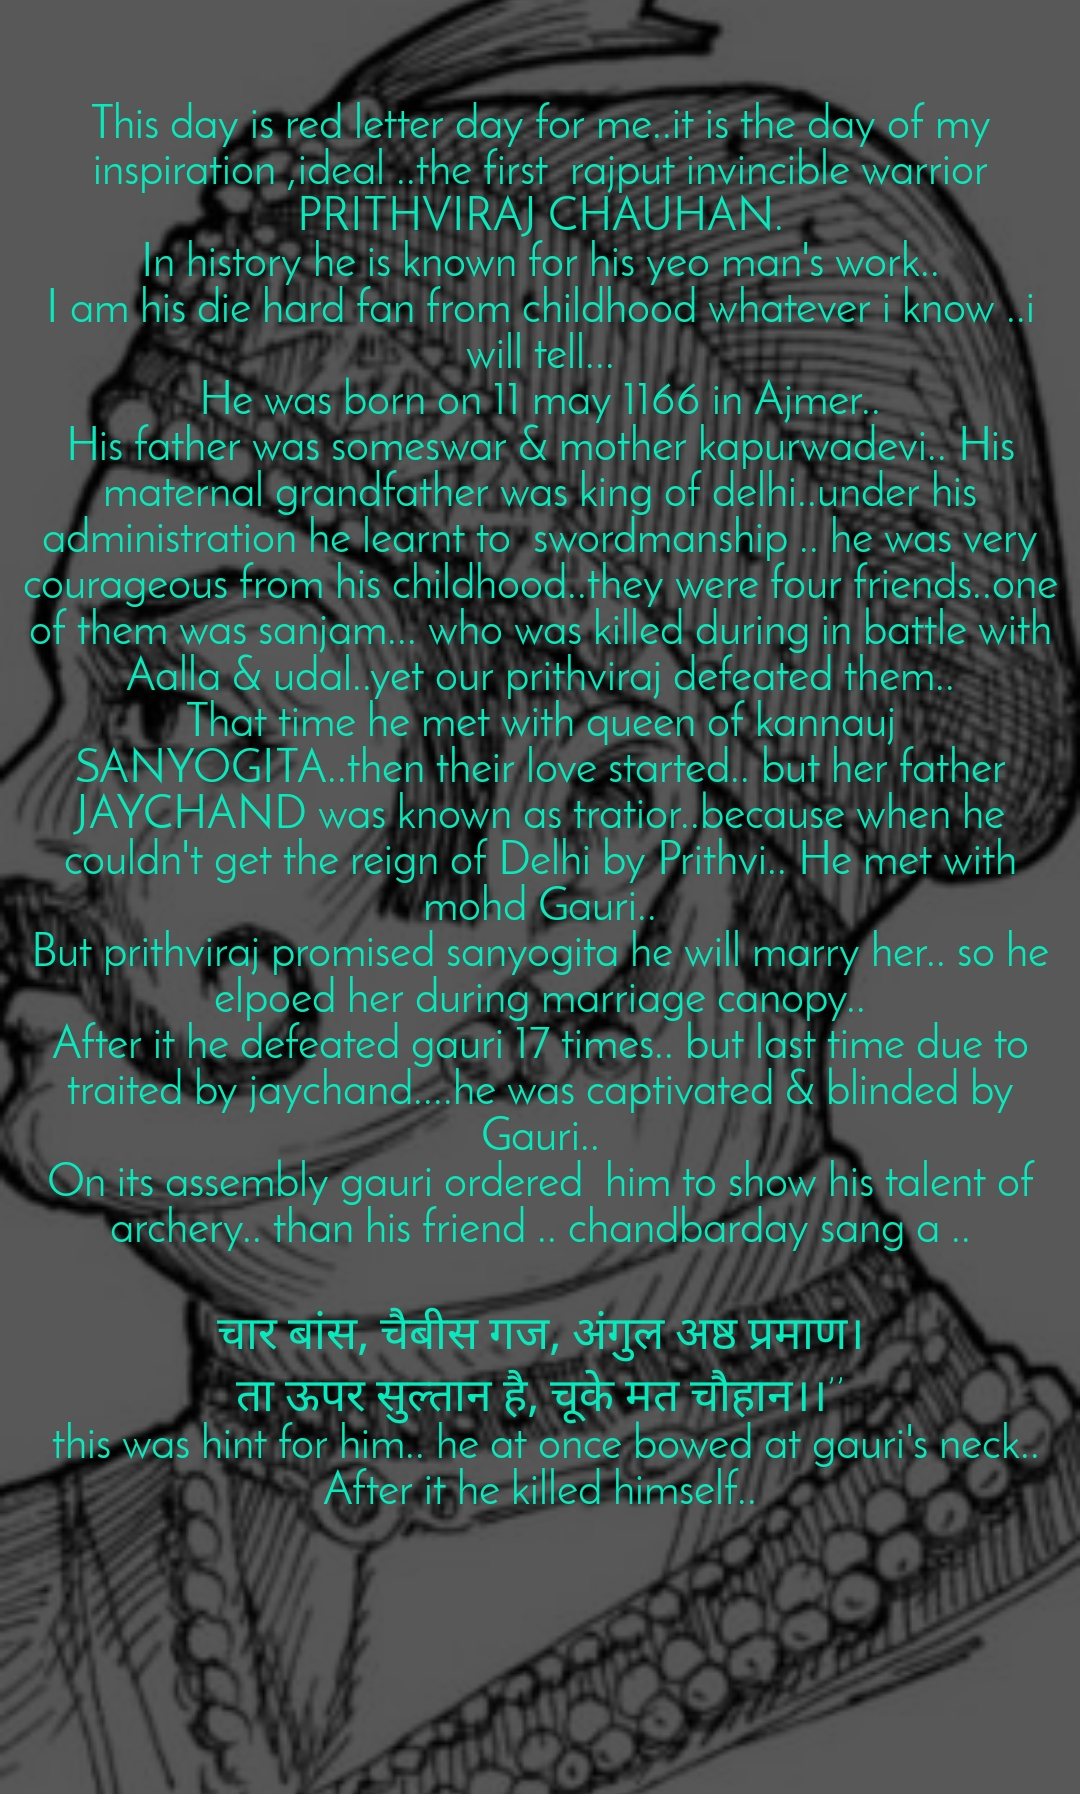 This day is red letter day for me..it is the day of my inspiration ,ideal ..the first  rajput invincible warrior PRITHVIRAJ CHAUHAN. In history he is known for his yeo man's work.. I am his die hard fan from childhood whatever i know ..i will tell... He was born on 11 may 1166 in Ajmer.. His father was someswar & mother kapurwadevi.. His maternal grandfather was king of delhi..under his administration he learnt to  swordmanship .. he was very courageous from his childhood..they were four friends..one of them was sanjam... who was killed during in battle with Aalla & udal..yet our prithviraj defeated them.. That time he met with queen of kannauj SANYOGITA..then their love started.. but her father JAYCHAND was known as tratior..because when he couldn't get the reign of Delhi by Prithvi.. He met with mohd Gauri.. But prithviraj promised sanyogita he will marry her.. so he elpoed her during marriage canopy.. After it he defeated gauri 17 times.. but last time due to traited by jaychand....he was captivated & blinded by Gauri.. On its assembly gauri ordered  him to show his talent of archery.. than his friend .. chandbarday sang a ..  चार बांस, चैबीस गज, अंगुल अष्ठ प्रमाण। ता ऊपर सुल्तान है, चूके मत चौहान।।''  this was hint for him.. he at once bowed at gauri's neck.. After it he killed himself..